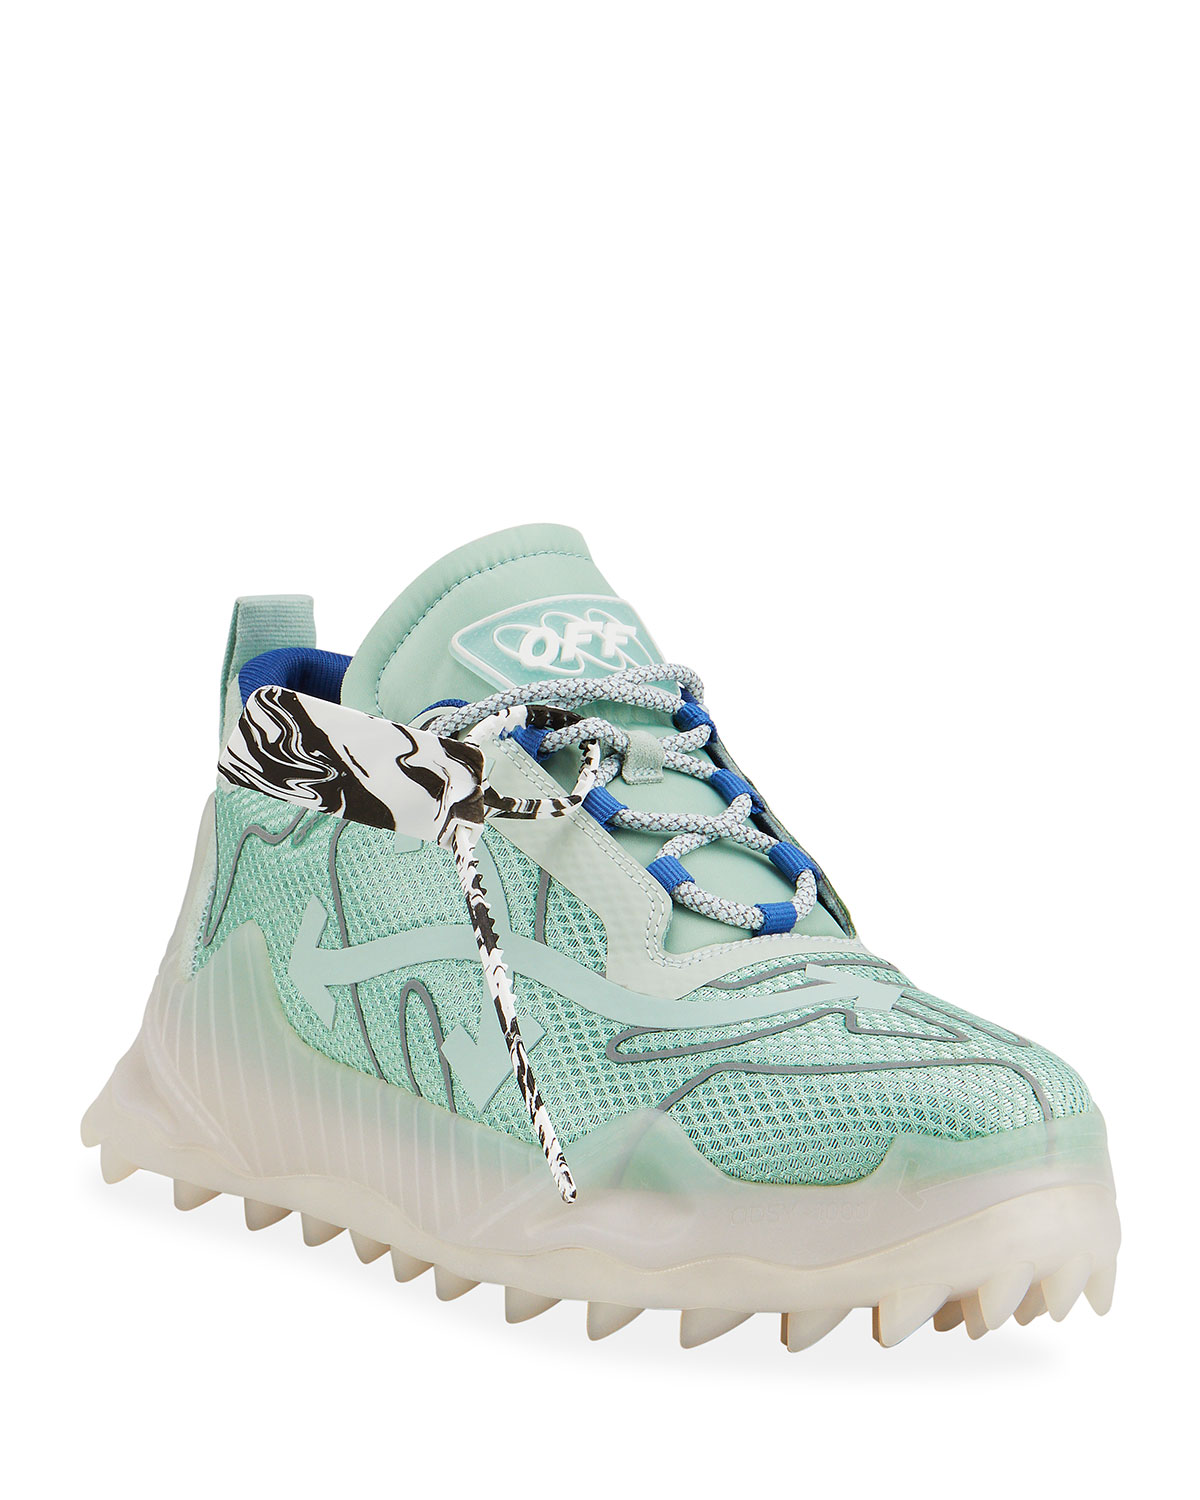 Off-White Sneakers MEN'S ODSY-1000 OUTLINE SCULPTED-SOLE SNEAKERS, MINT SILVER